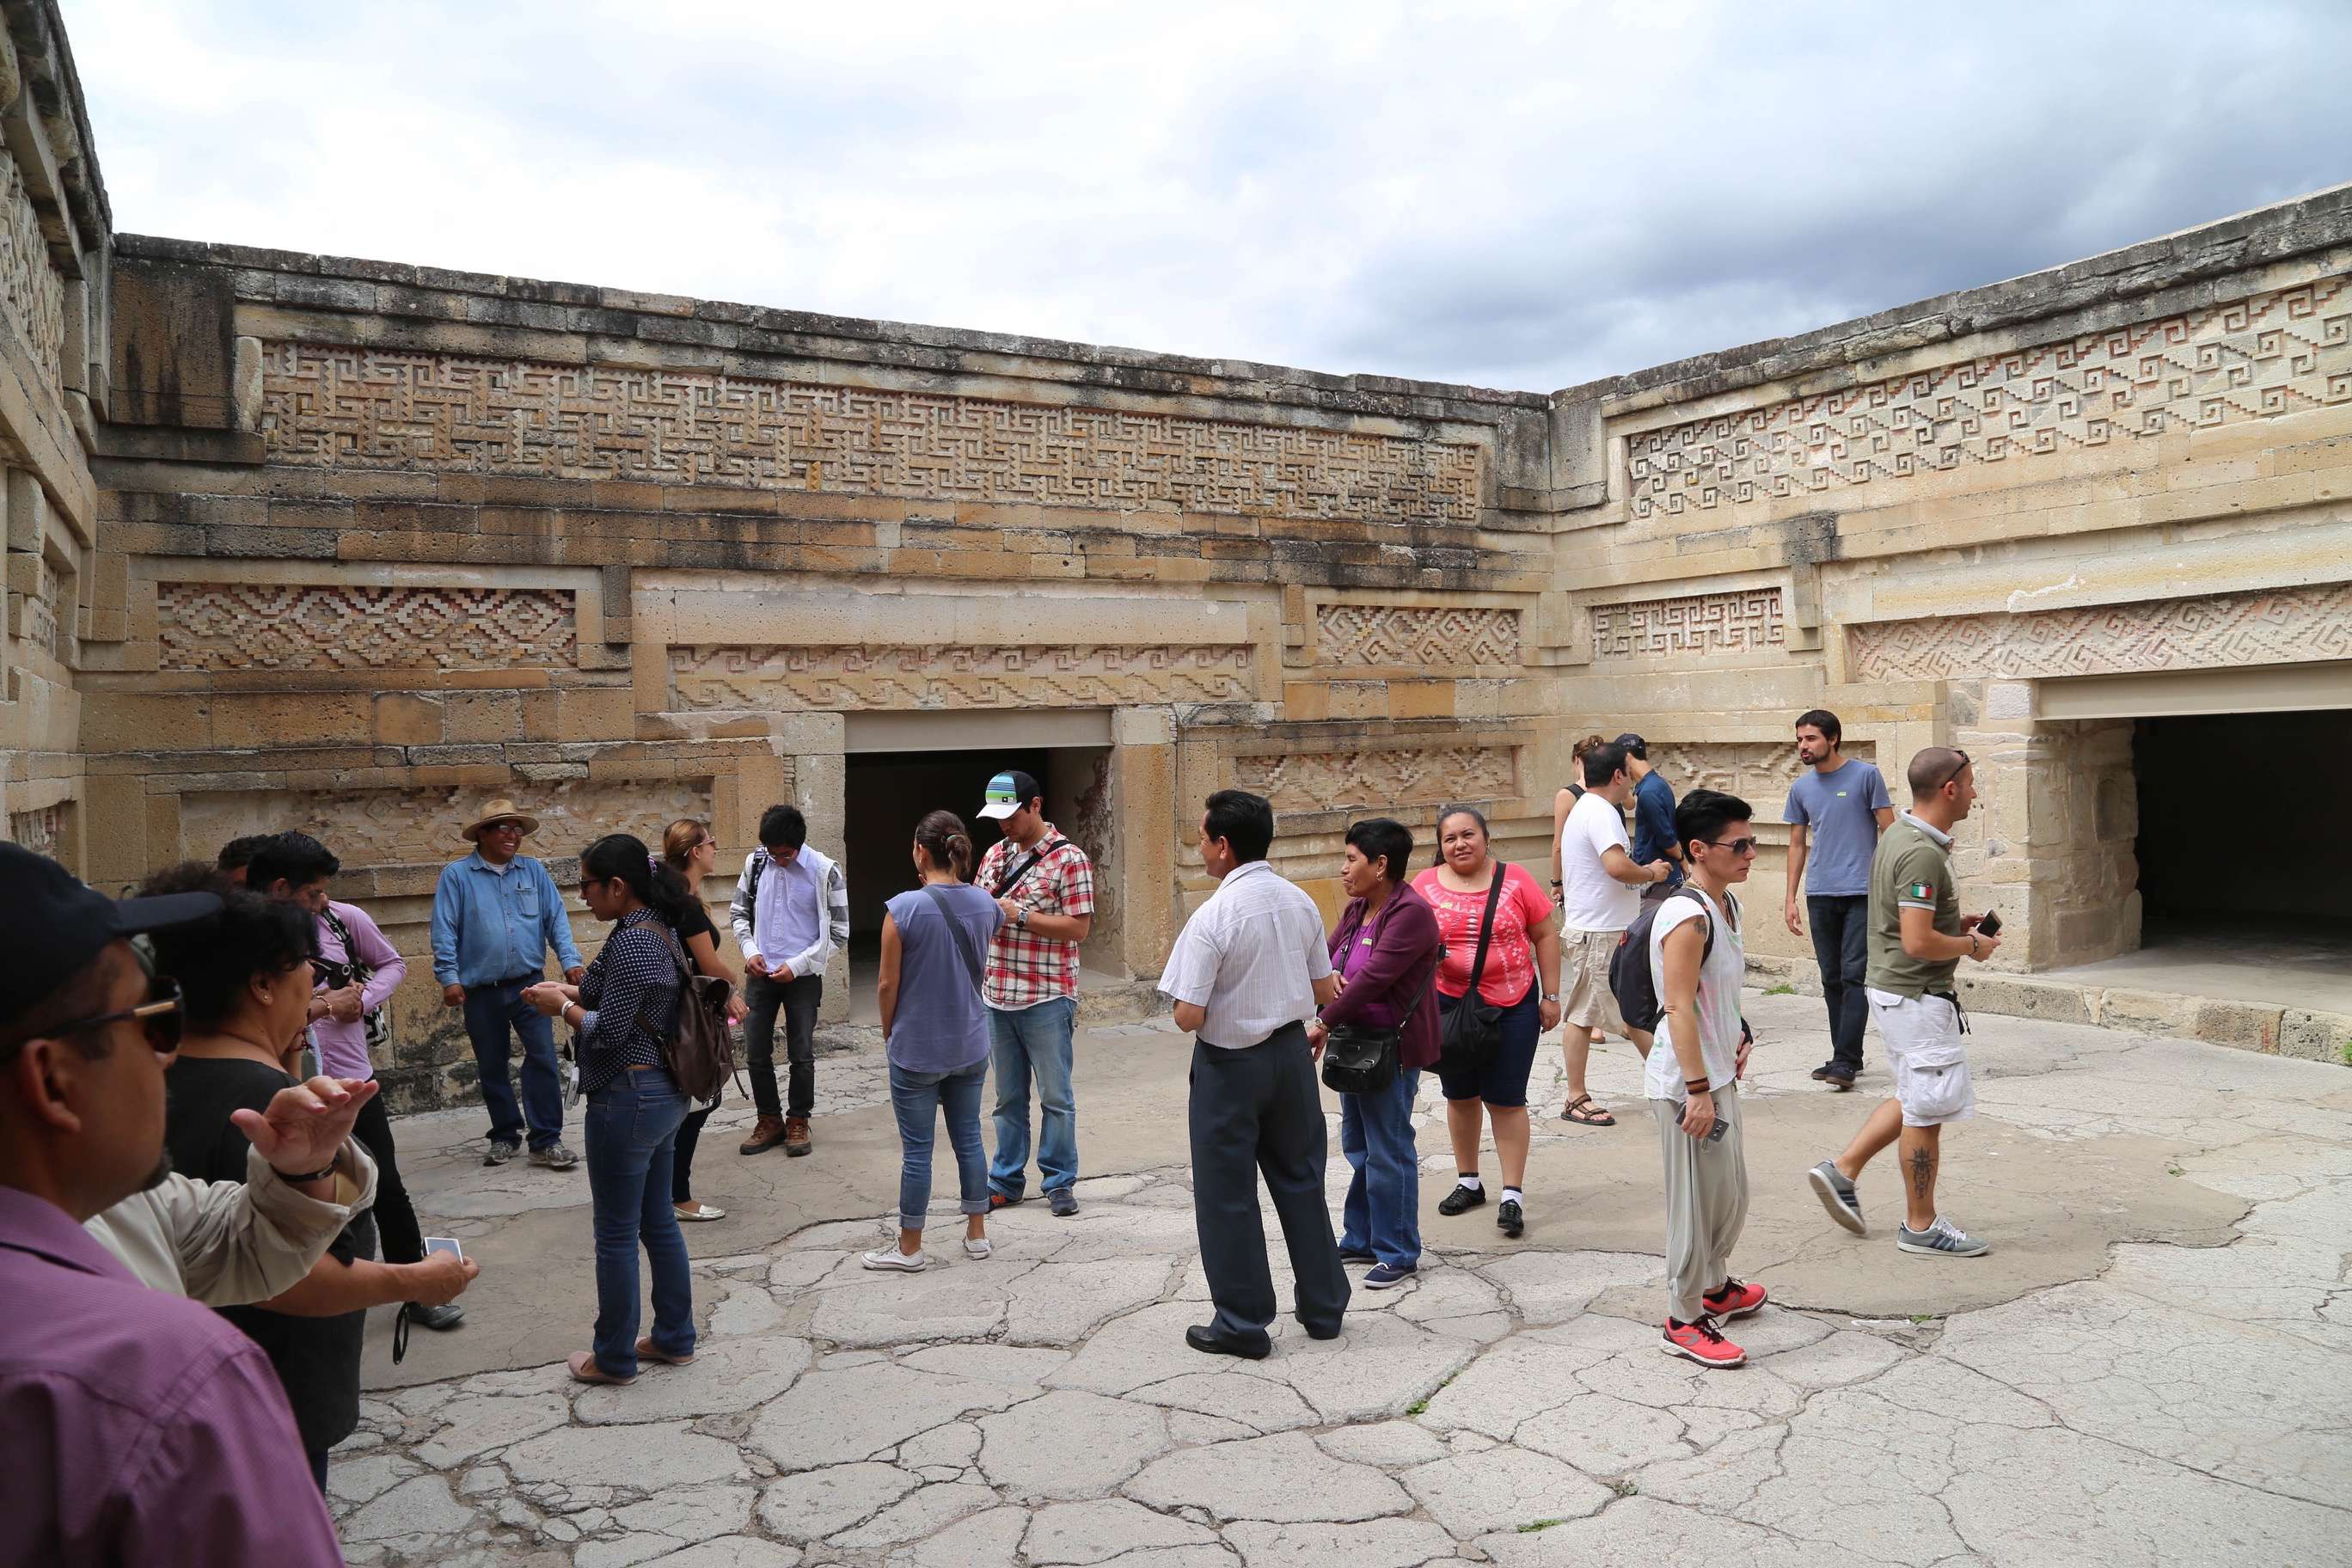 This group, in the courtyard atop one of the buildings at Mitla is small compared to the crowds at many of the archaeology sites in Mexico.